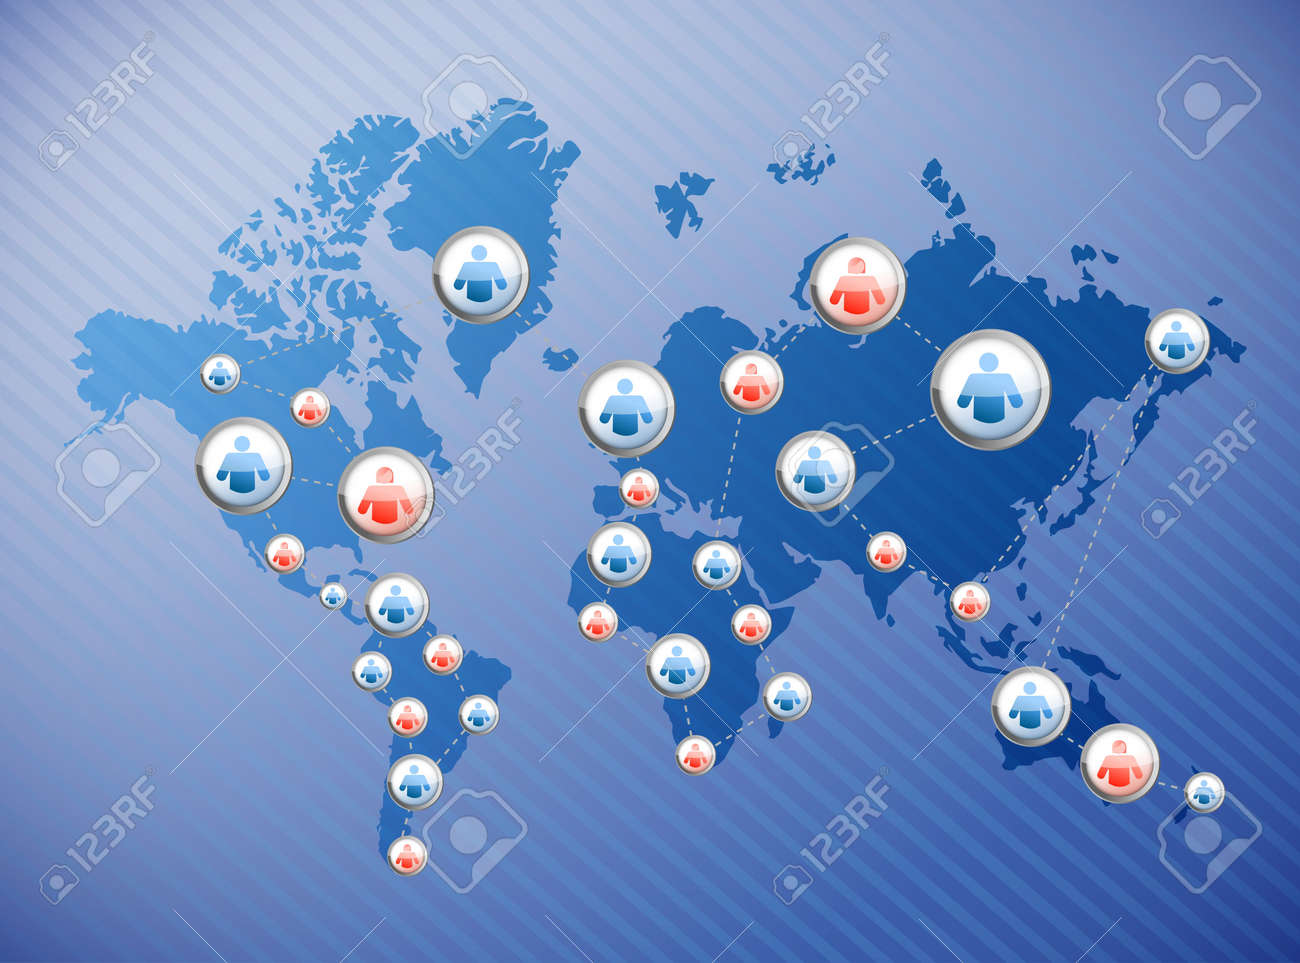 social media connections illustration design over a world map Stock Photo - 21942456